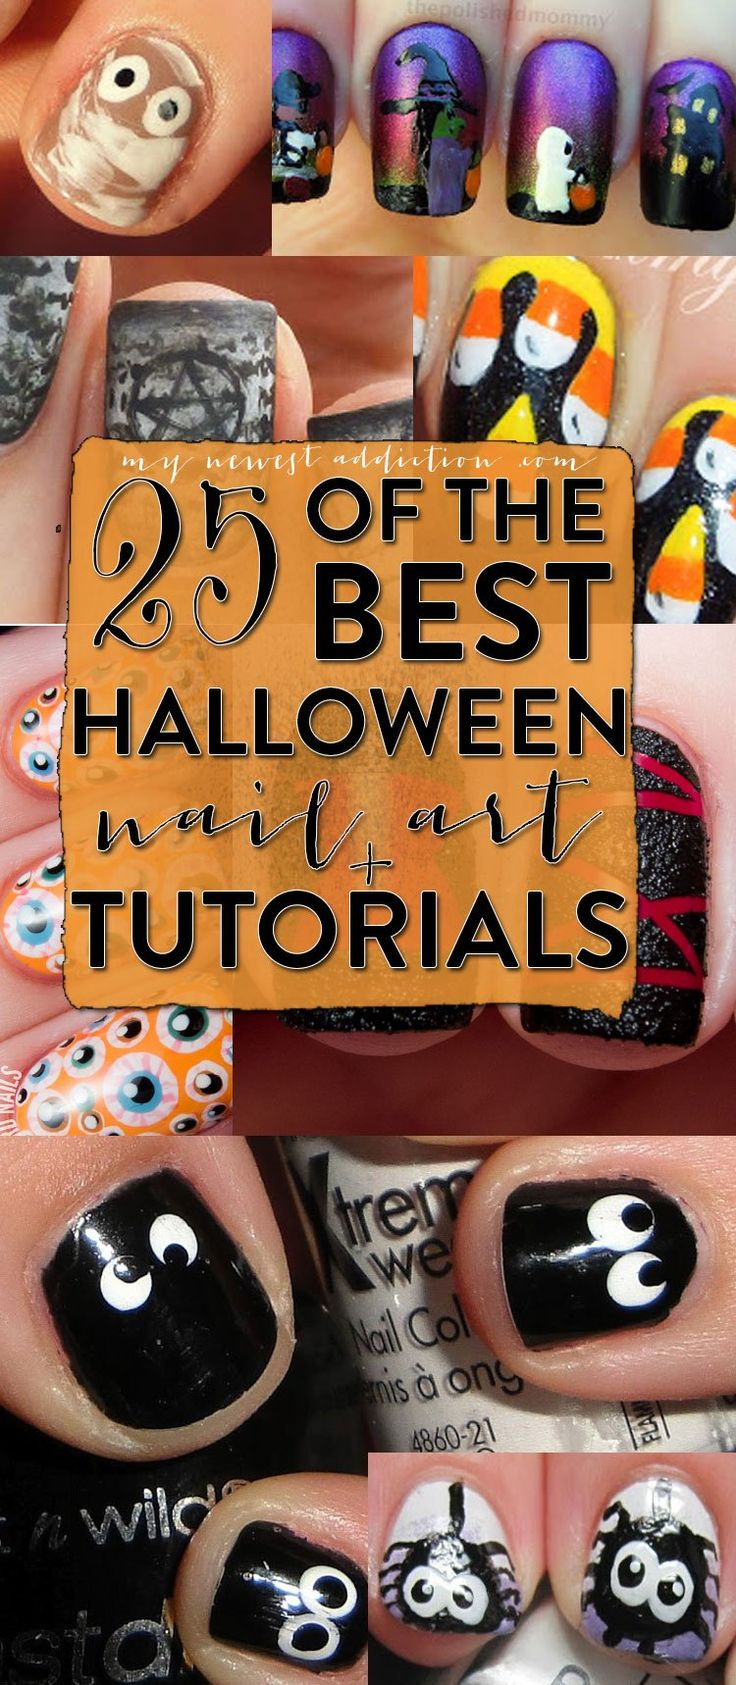 tiffany co europe  Of The Best Halloween Nail Art  Tutorials  My Newest Addiction